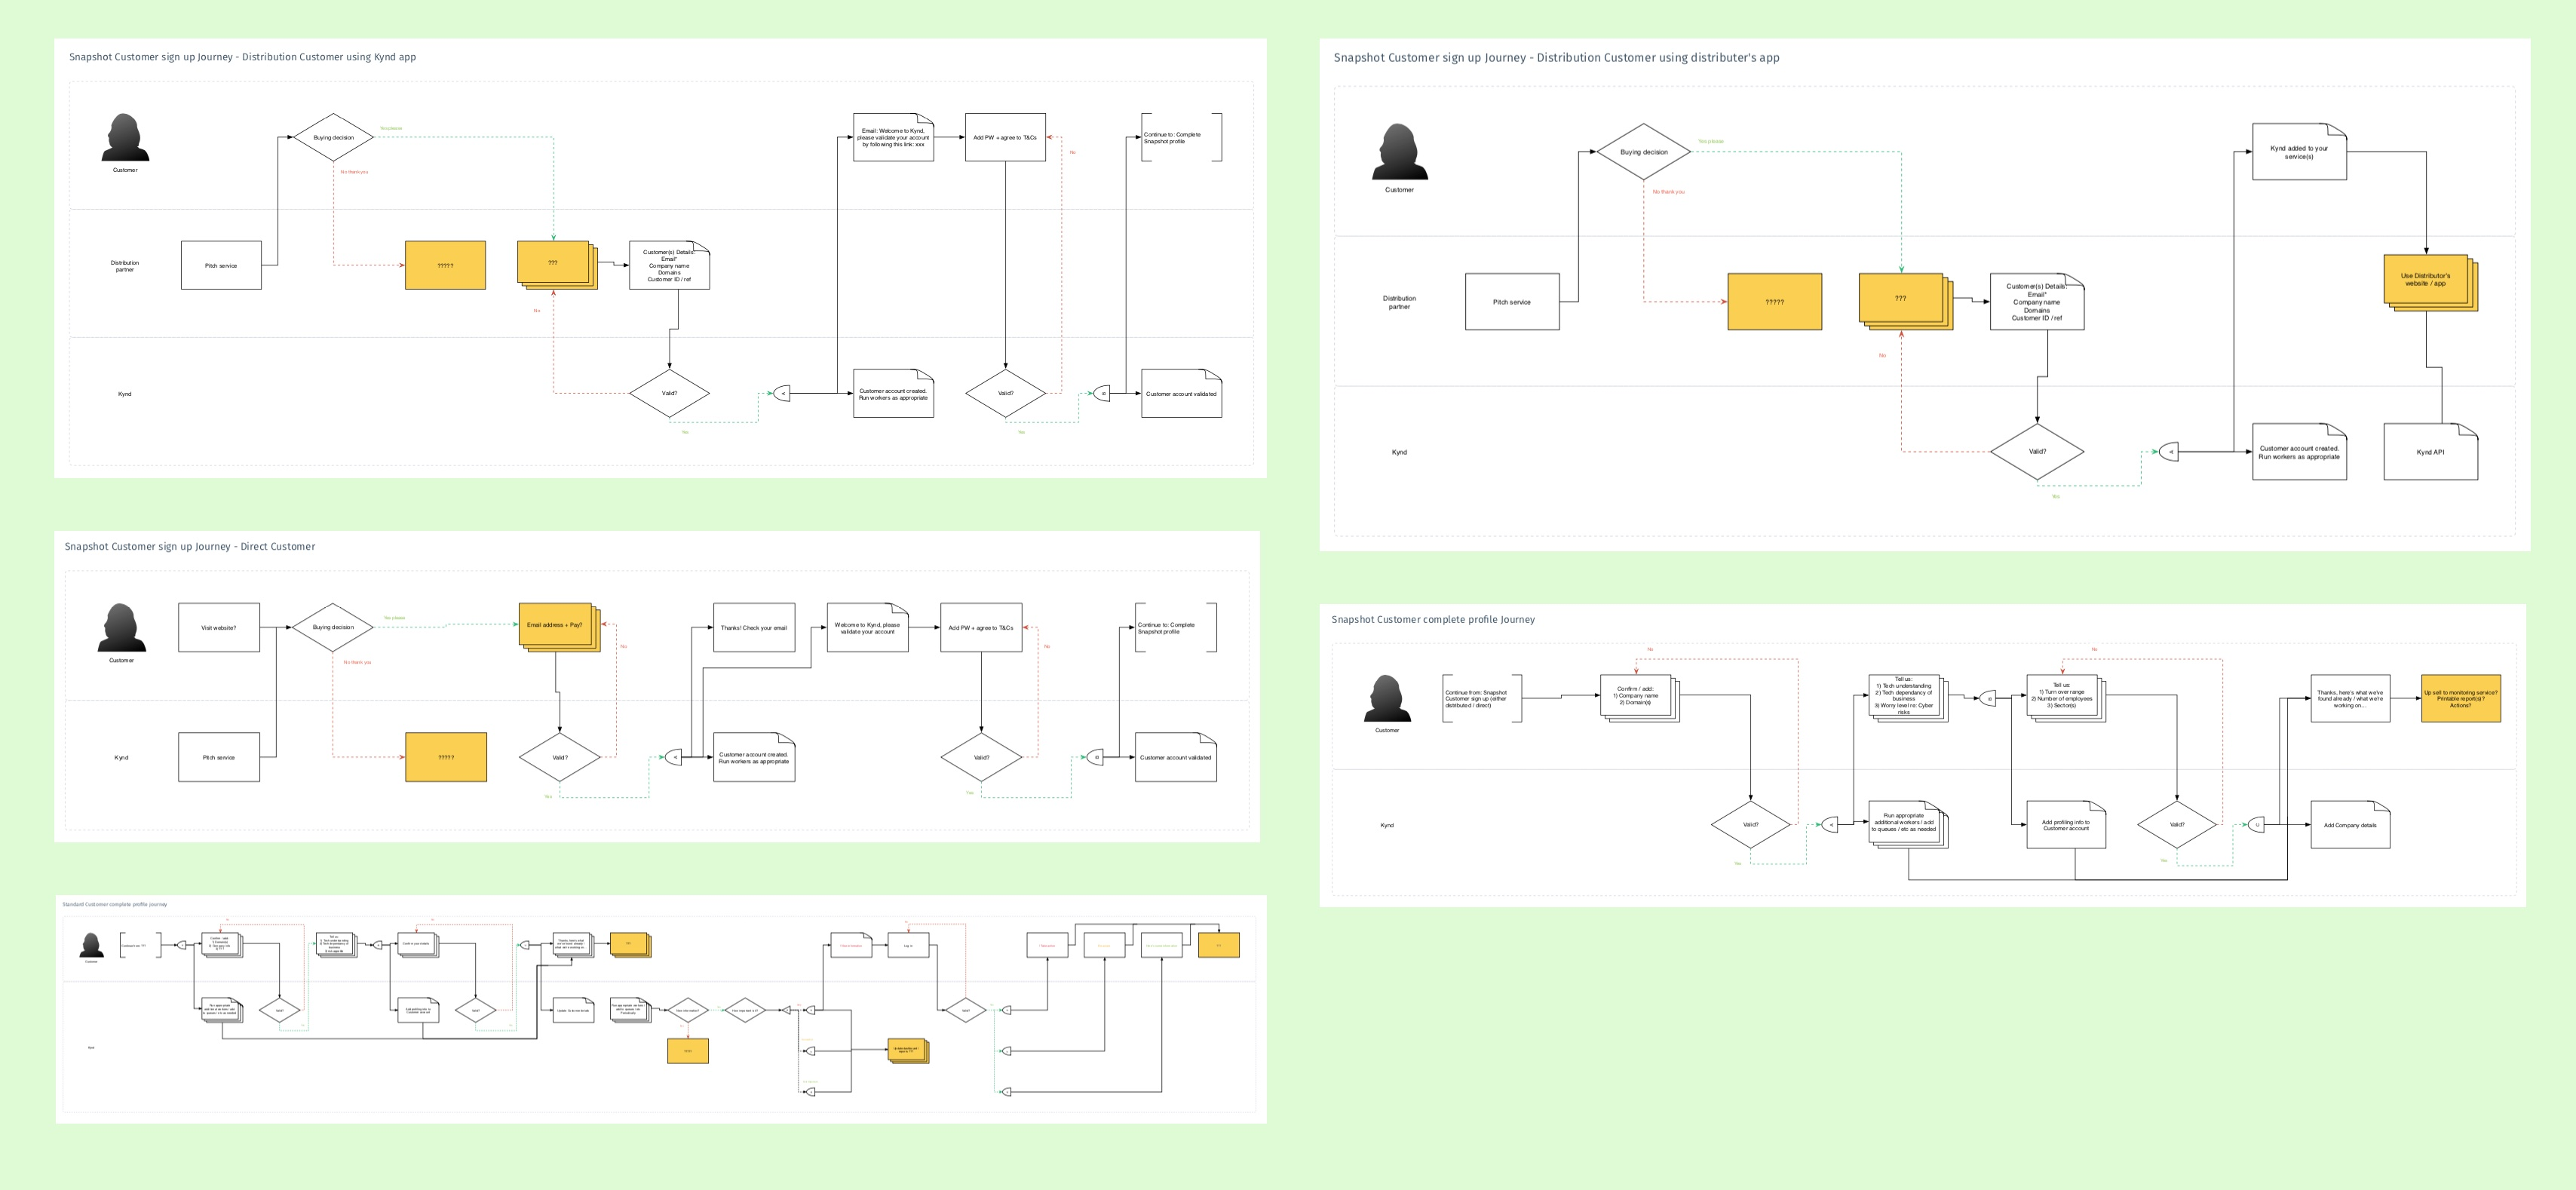 On boarding and first time use user journey maps